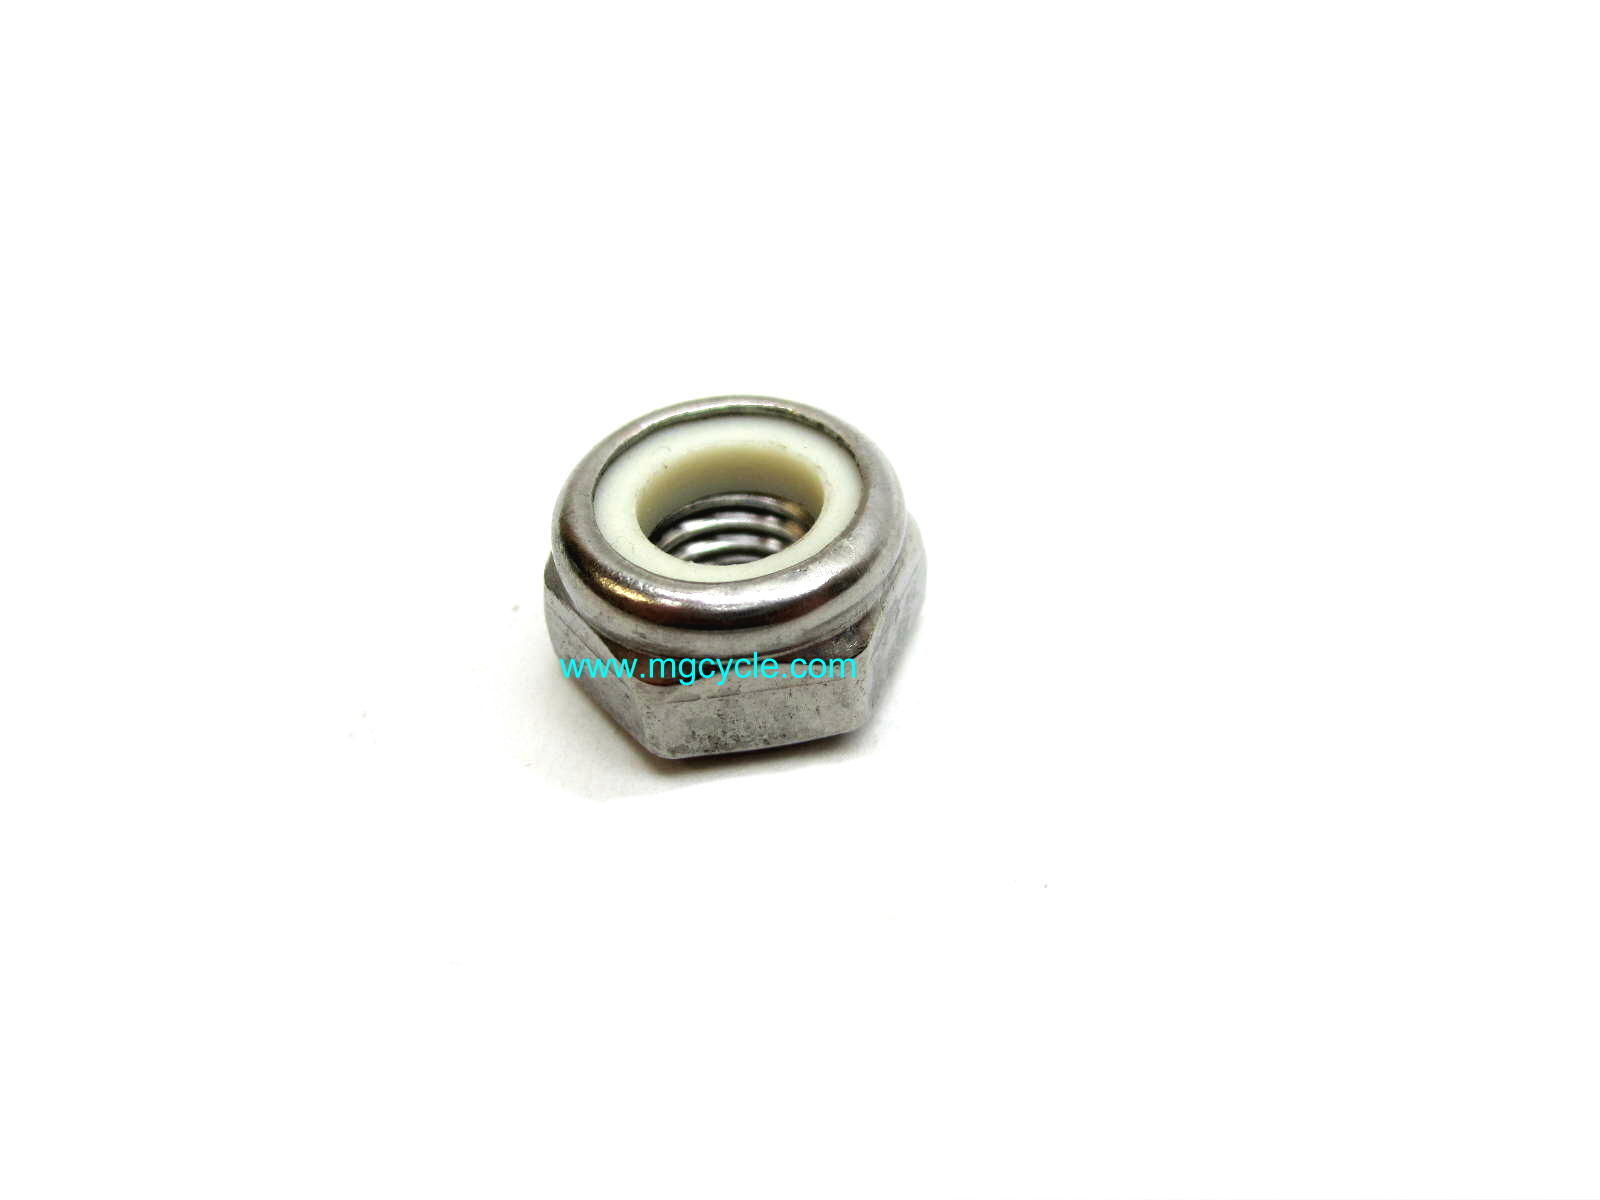 M10 nylock hex nut stainless, centerstand nuts, etc